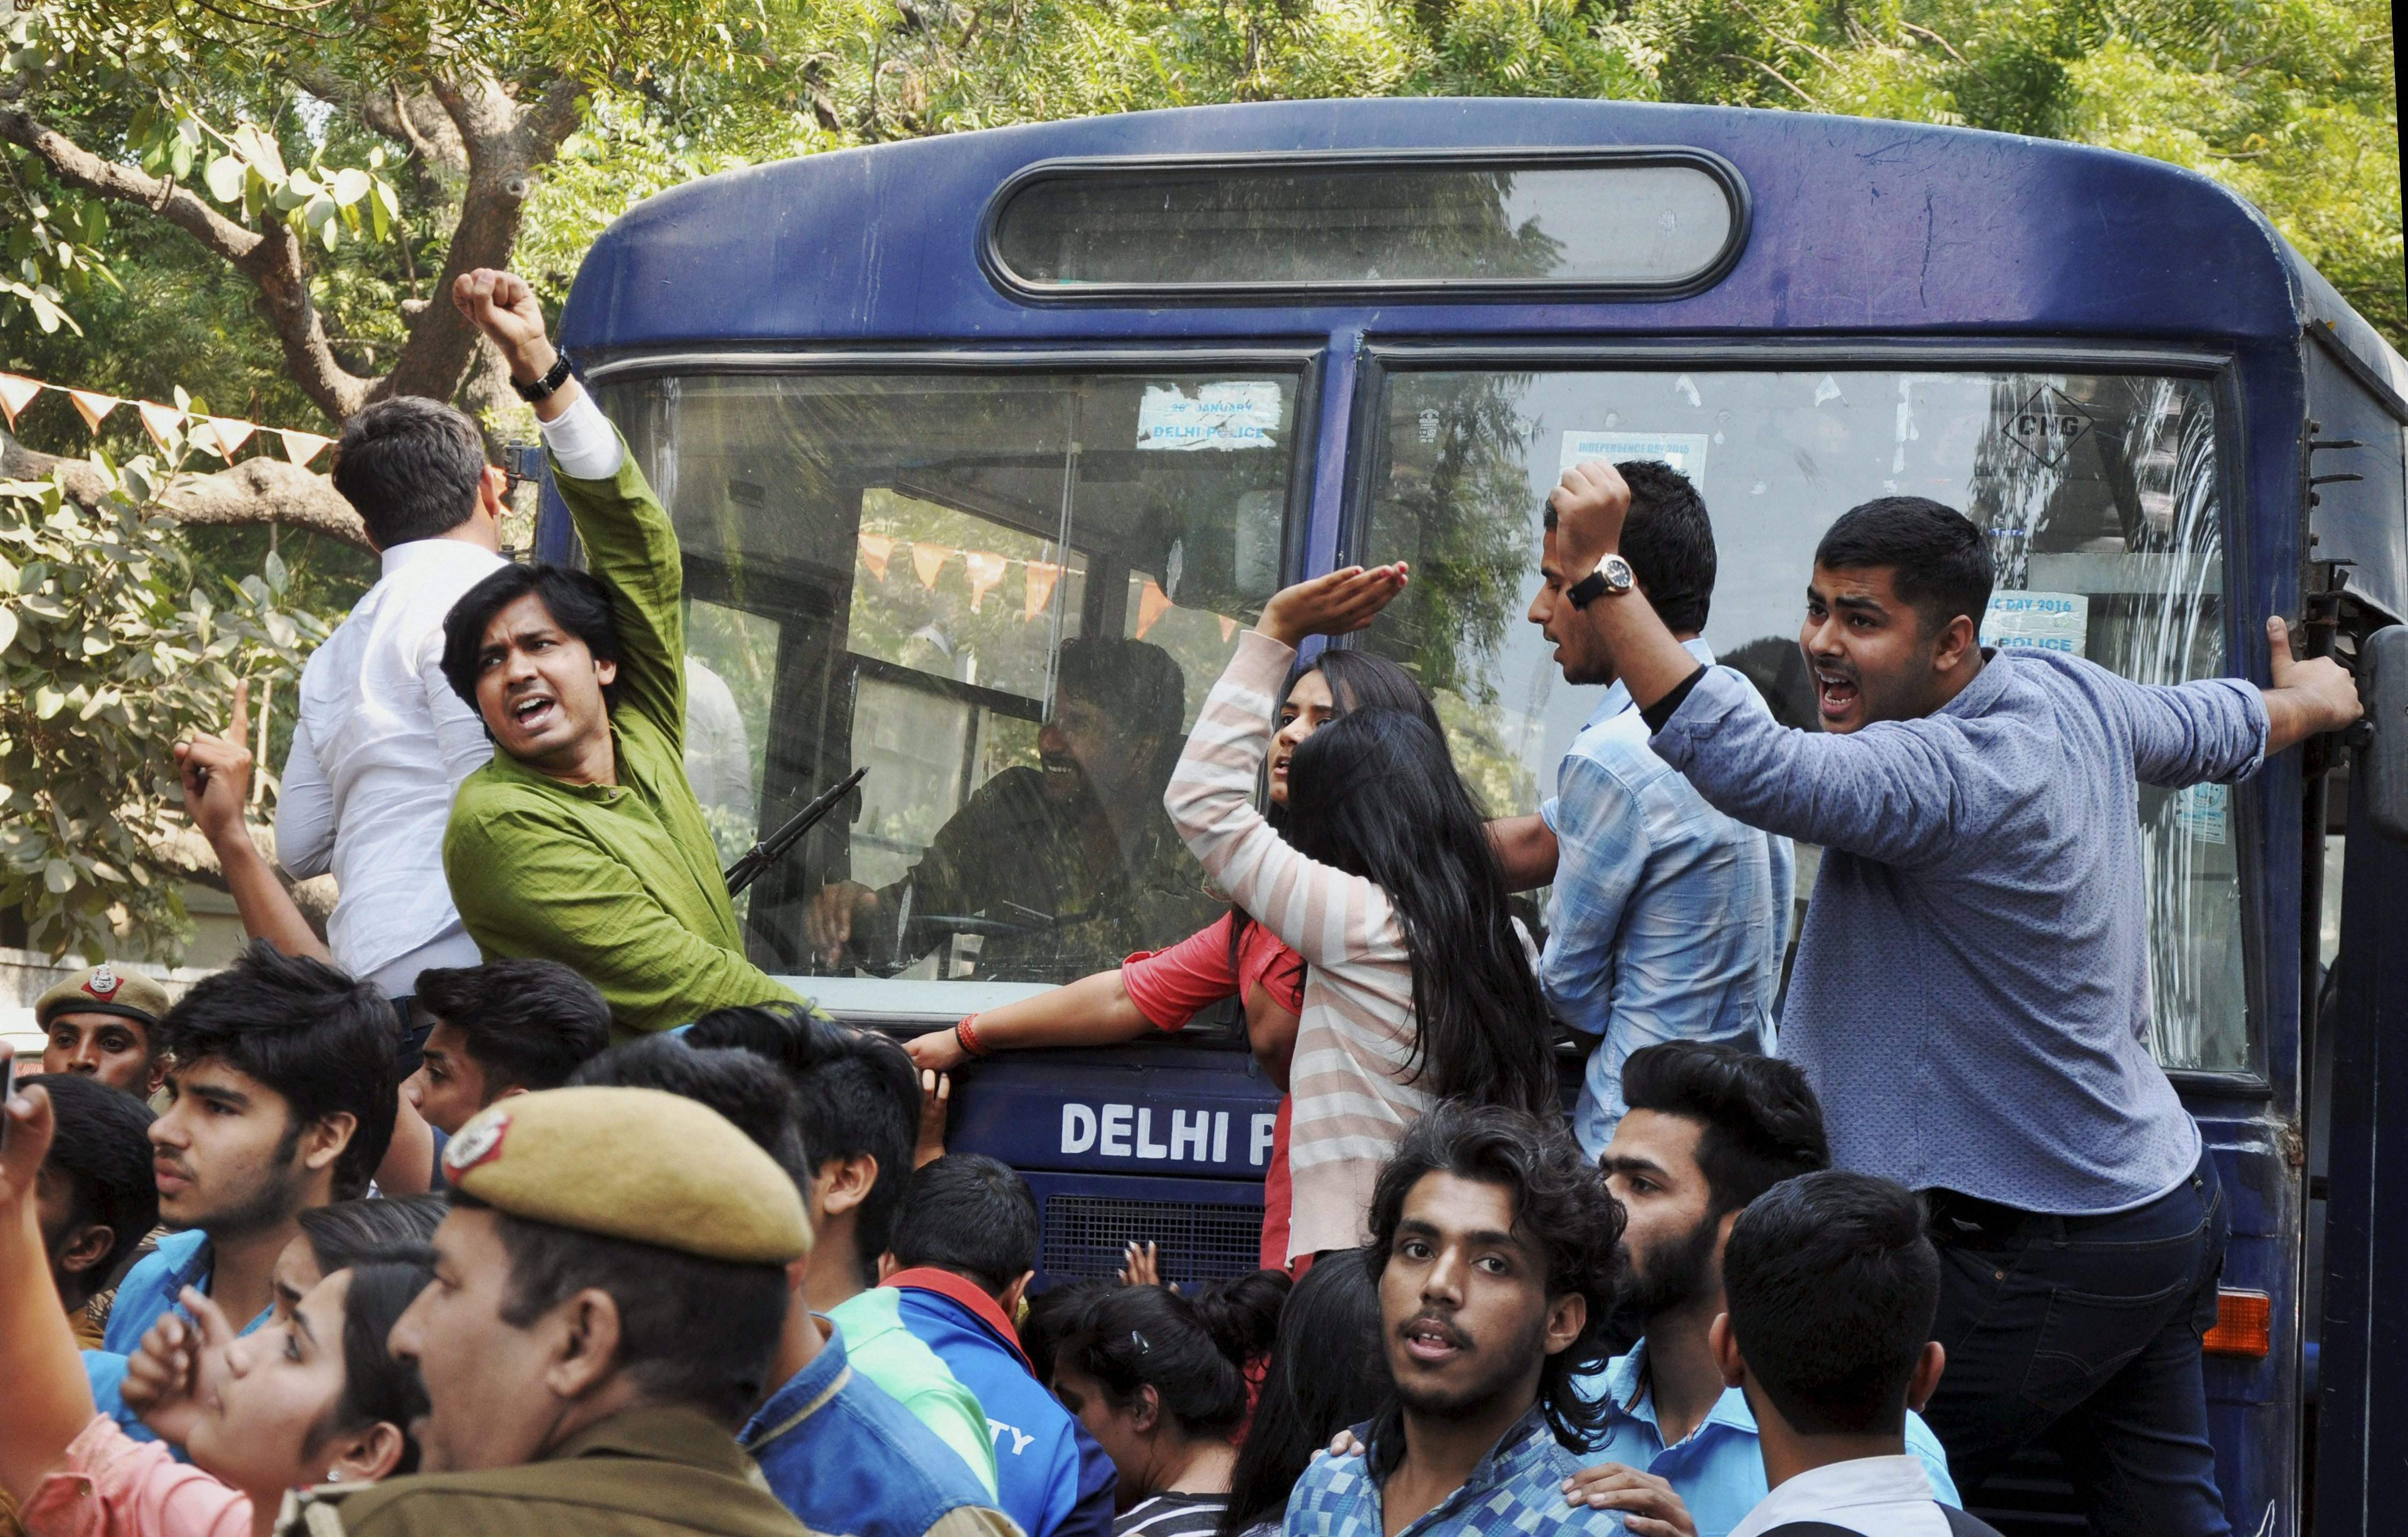 ABVP activists at Ramjas College on Wednesday. Credit: PTI